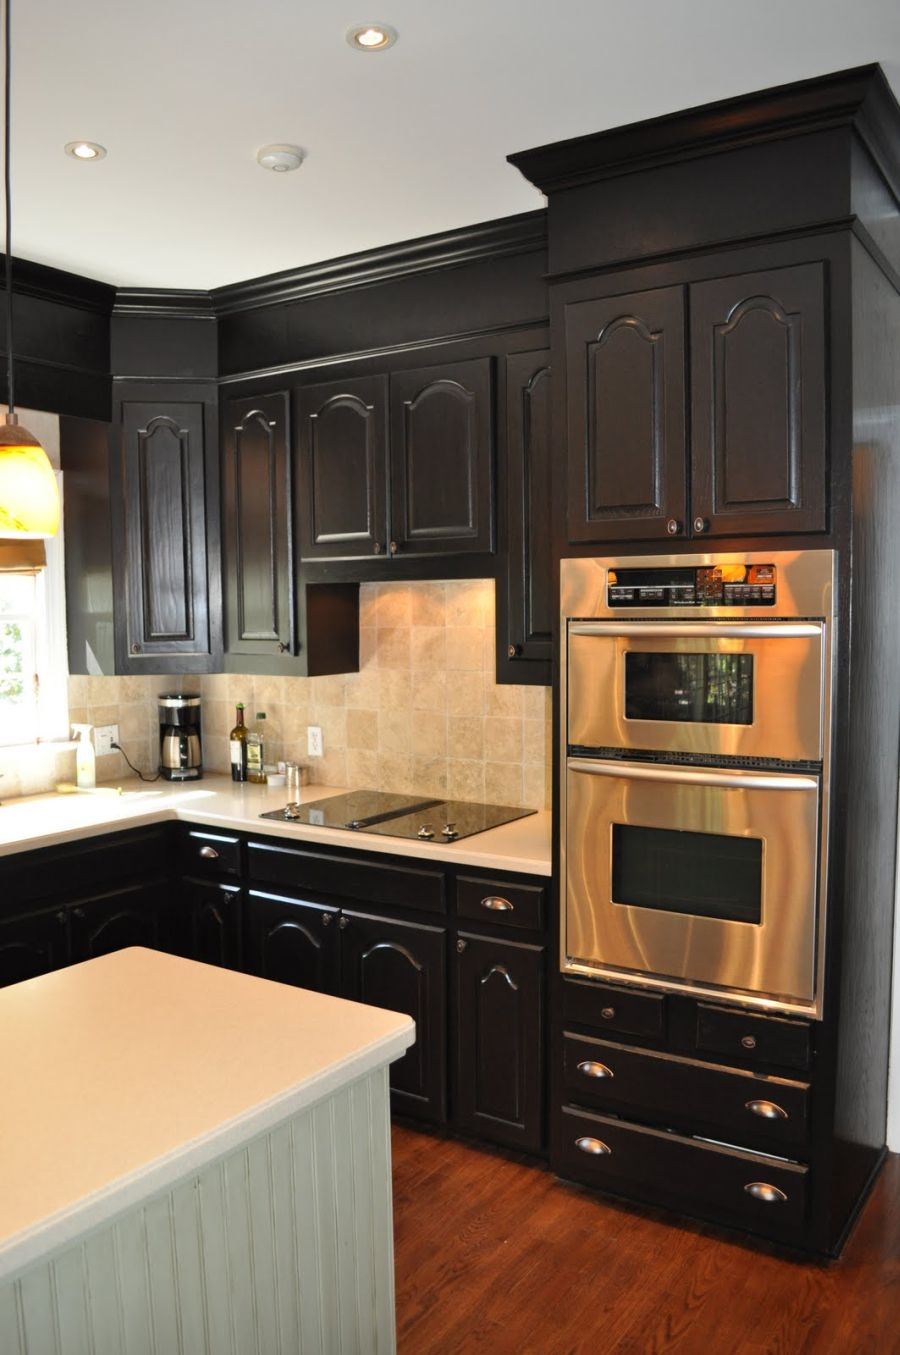 One color fits most black kitchen cabinets for Floor and decor kitchen cabinets